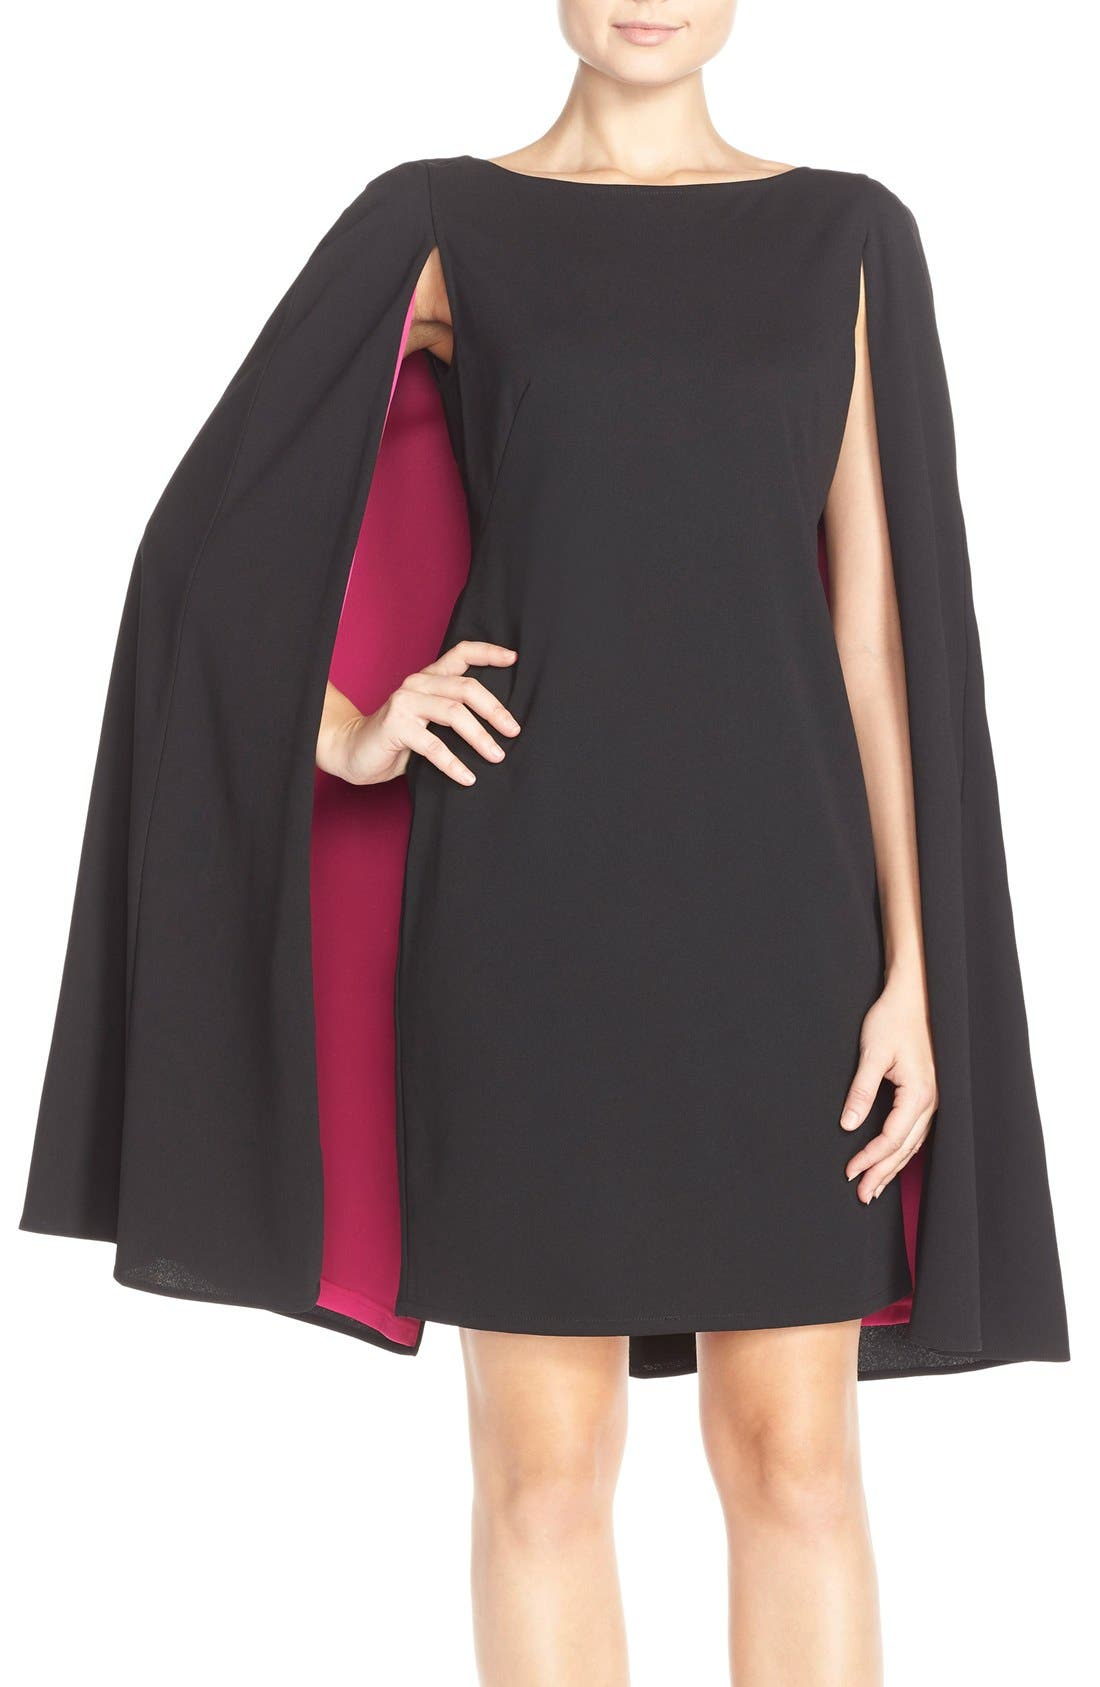 Alternate Image 1 Selected - Adrianna Papell Cape Sheath Crepe Dress